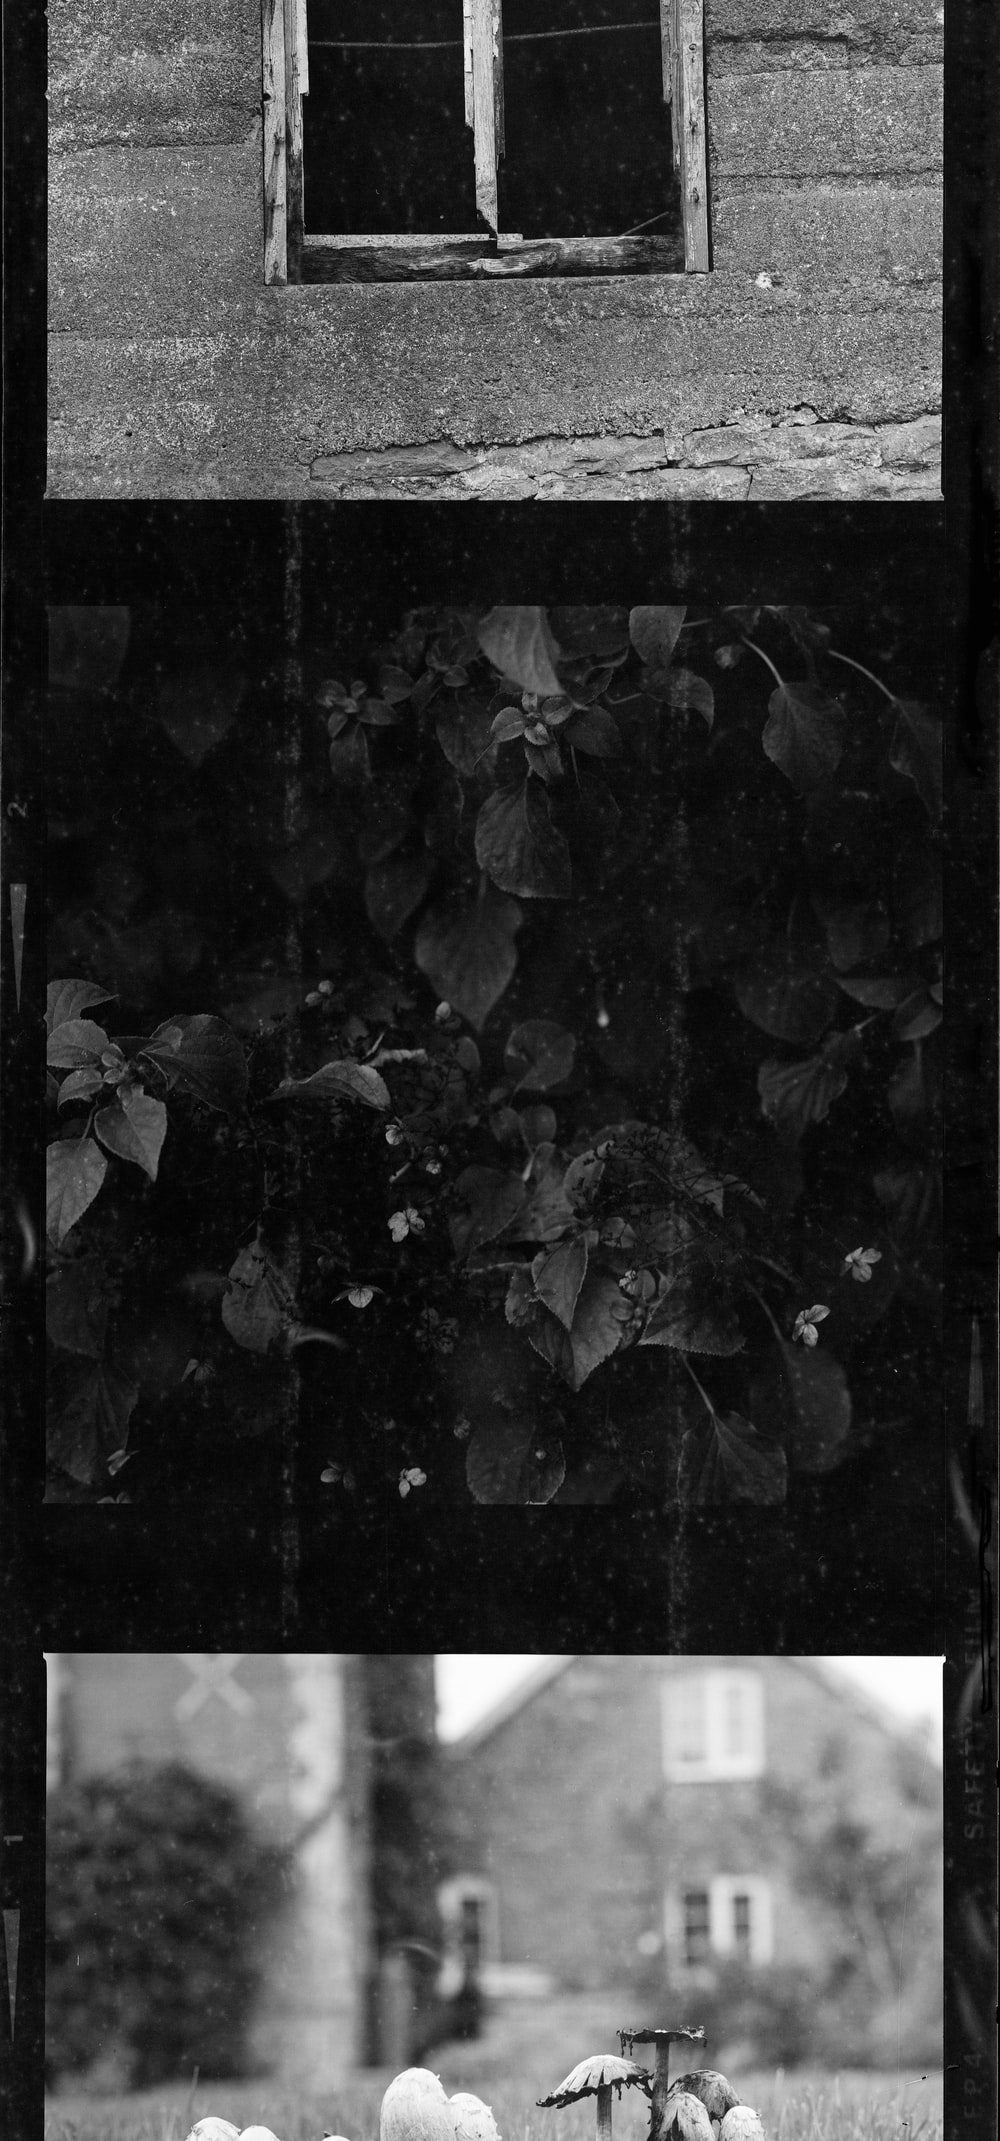 greyscale photo of leaves on the ground